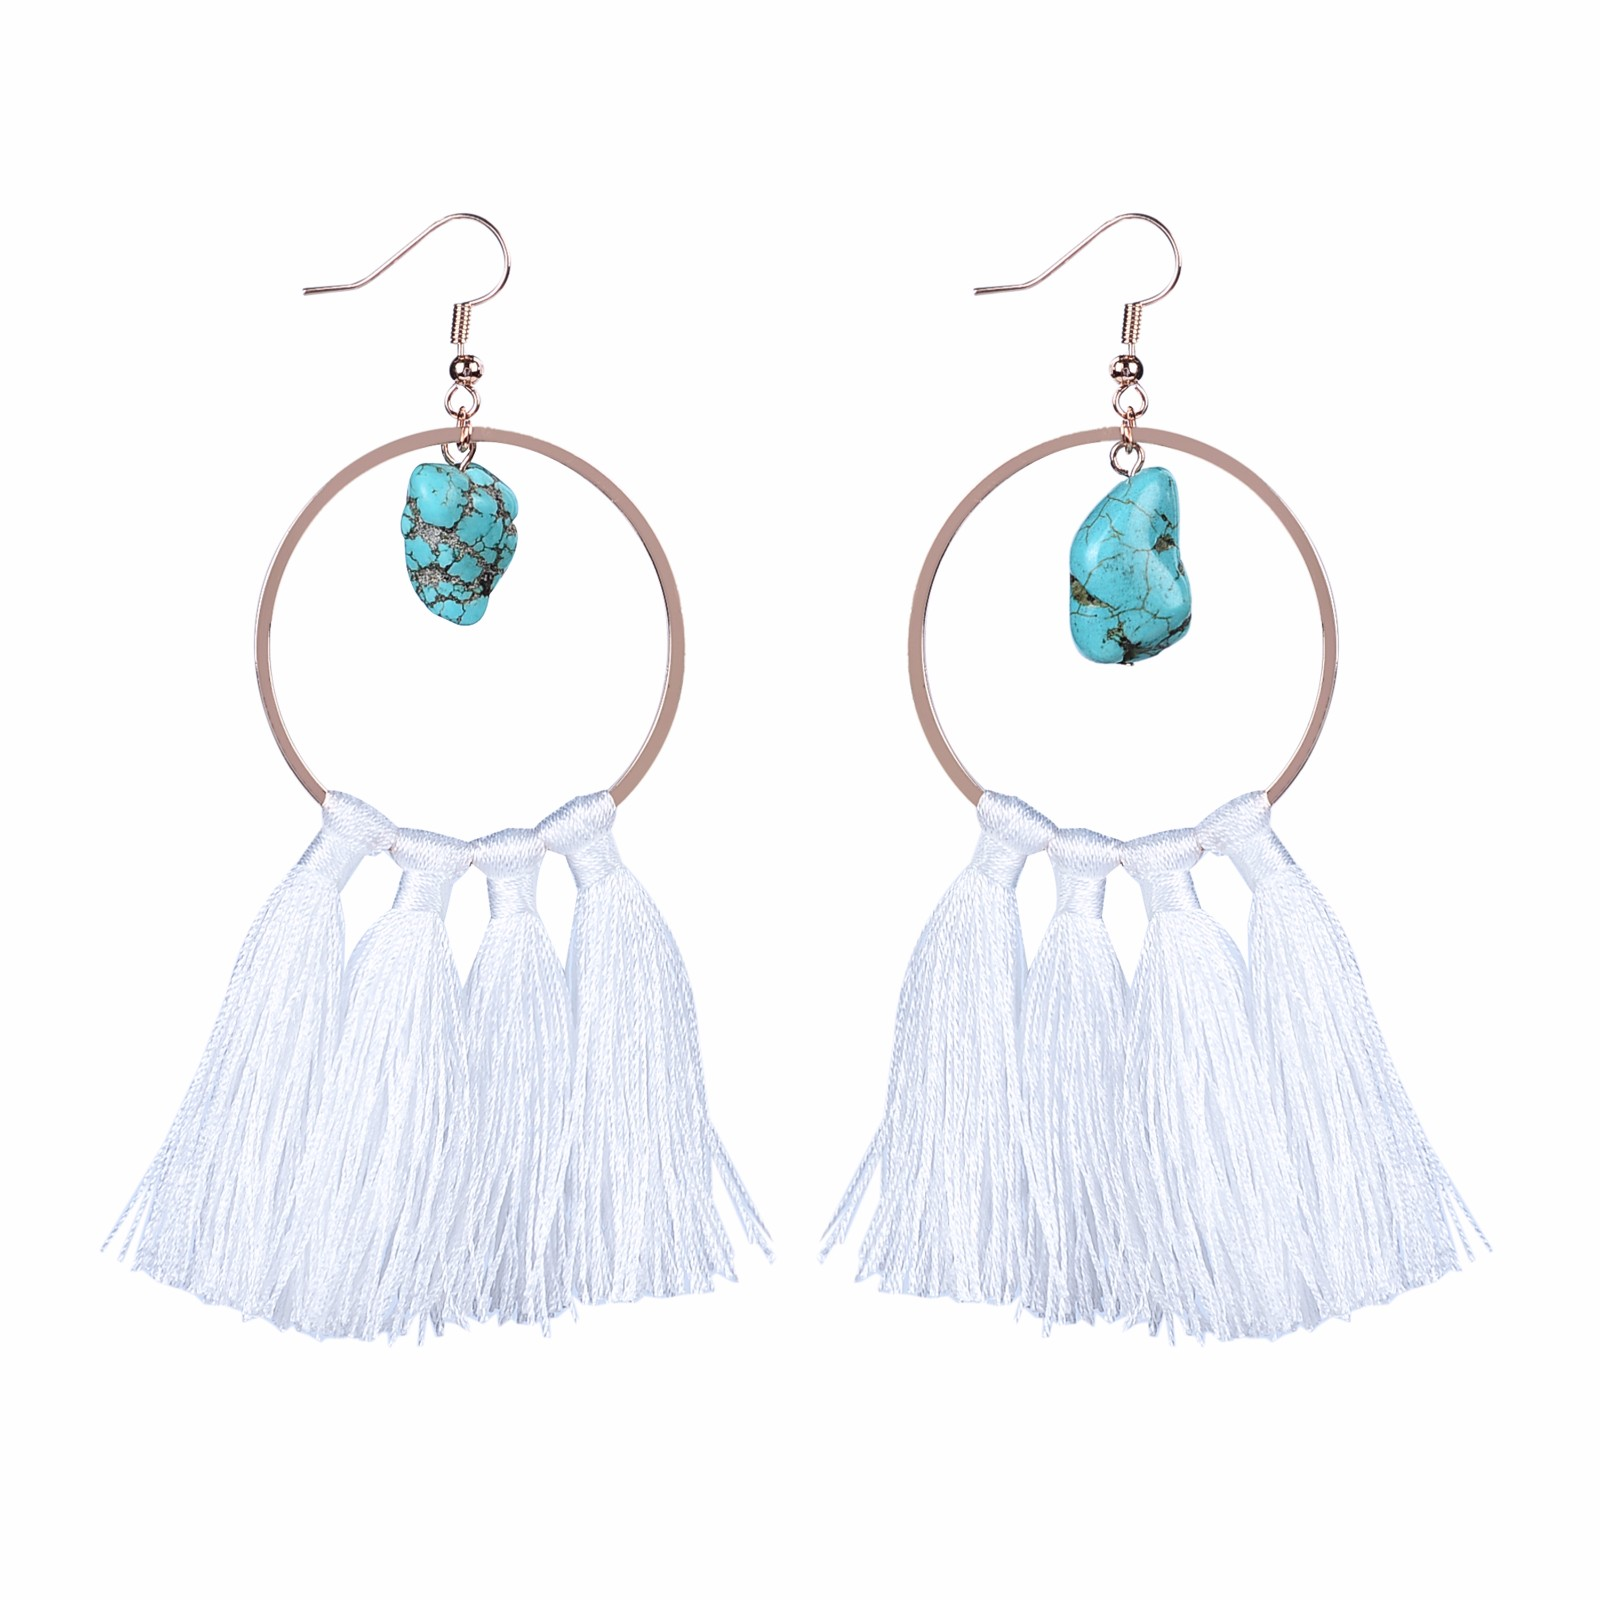 Handmade natural stone beads white color tassel hoop earrings